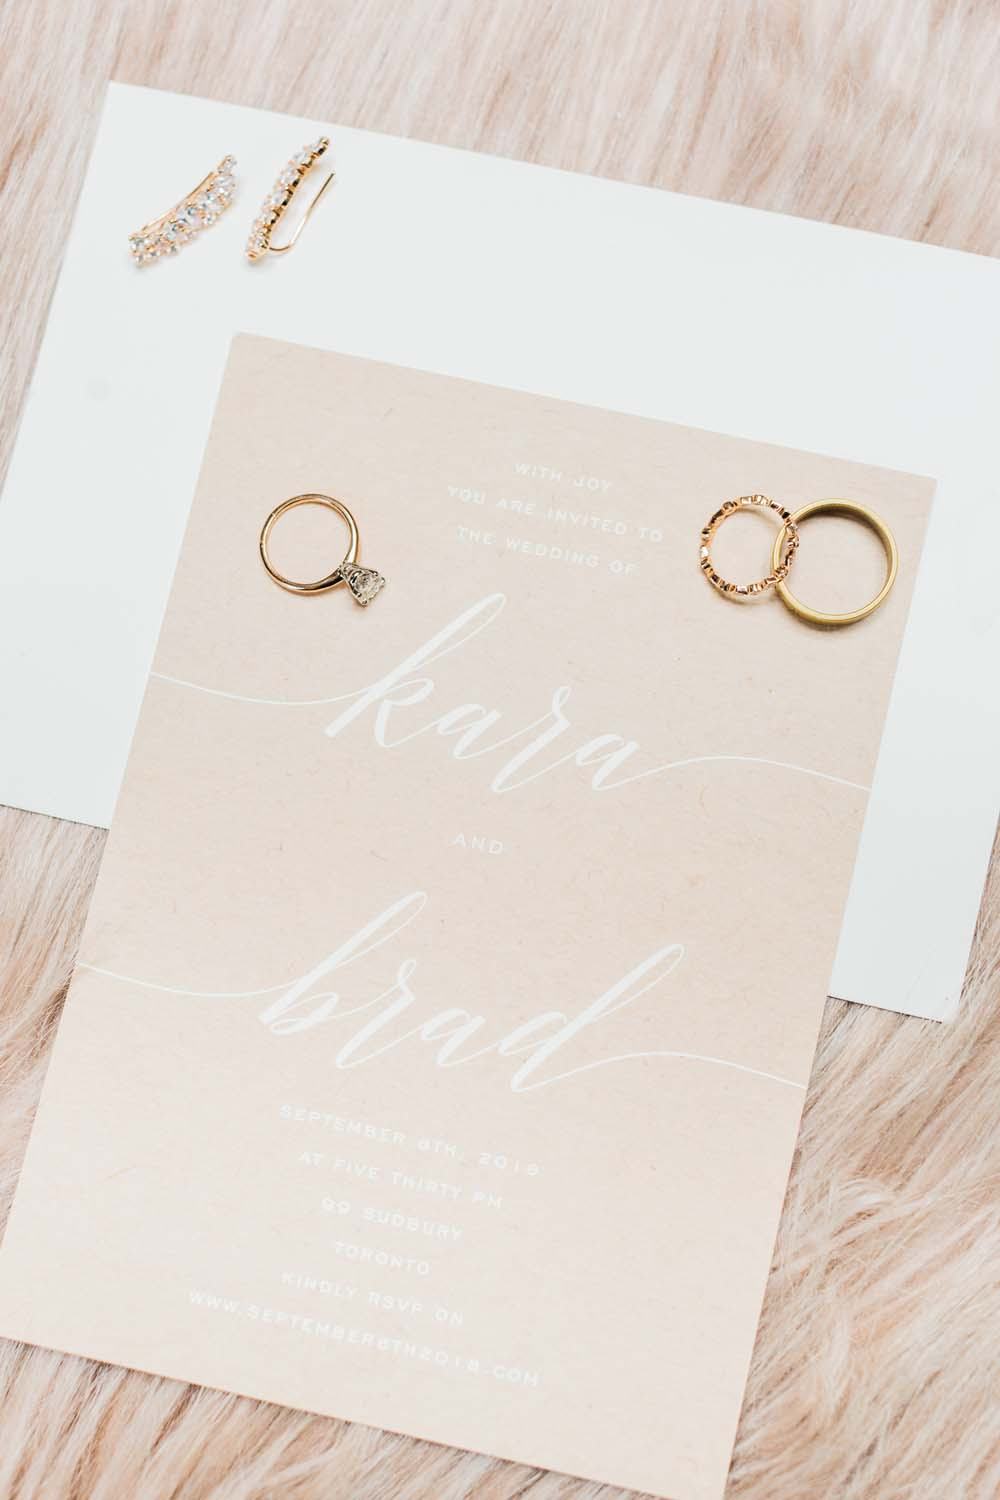 A Bright and Airy September Wedding in Toronto, Ontario - Wedding Stationery and Rings